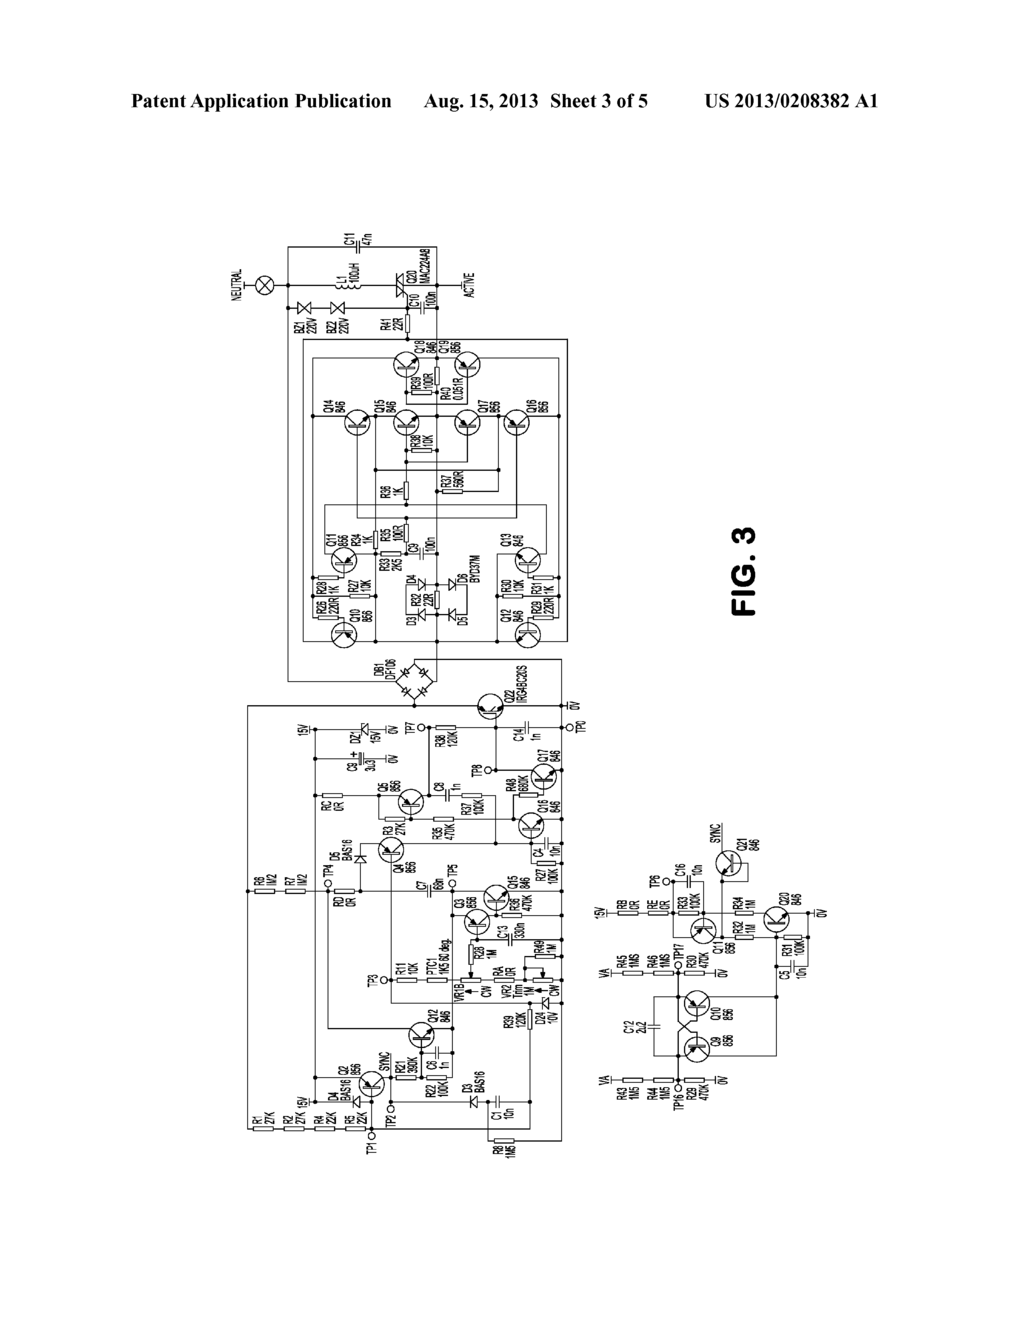 Dimmer Circuit with Improved Inductive Load Imbalance ... on mute circuit schematic, light circuit schematic, toggle circuit schematic, control circuit schematic, halogen circuit schematic, bug zapper circuit schematic, turn signal circuit schematic, timer circuit schematic, diode circuit schematic, oscillator circuit schematic, clock circuit schematic, telephone circuit schematic, ignition circuit schematic, alternator circuit schematic, relay circuit schematic, thermostat circuit schematic, flash circuit schematic, radio circuit schematic, dmx circuit schematic, led circuit schematic,